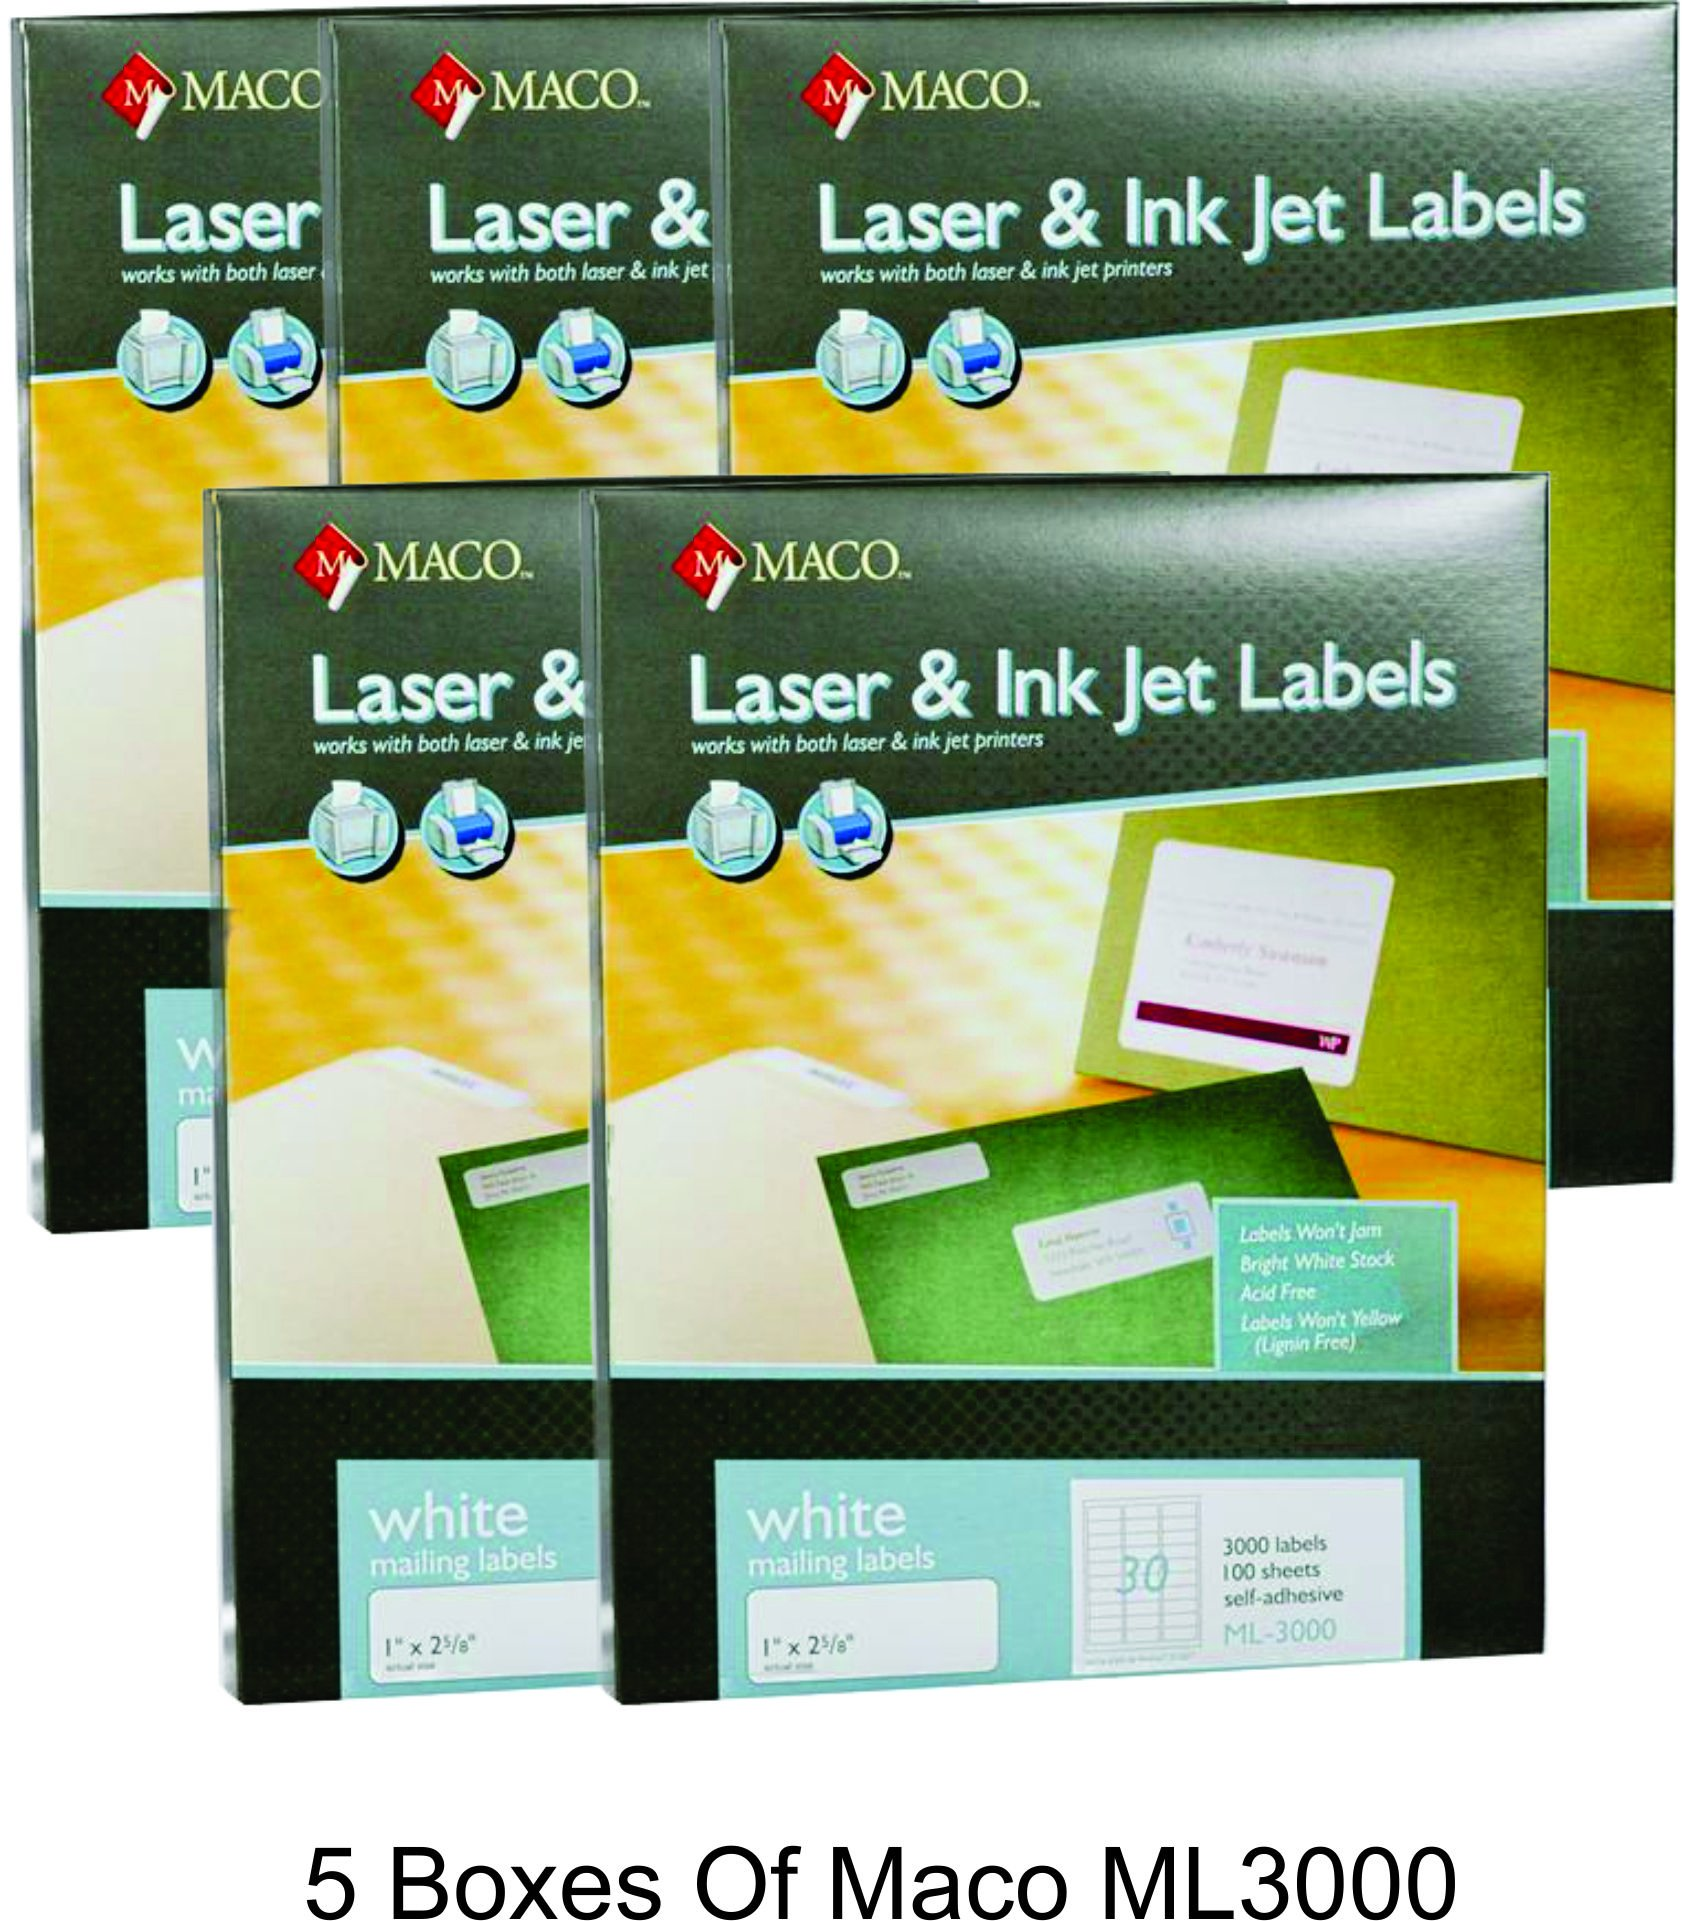 MACO Laser/Ink Jet White Address Labels, 1 x 2-5/8 Inches, 30 Per Sheet, 3000 Per Box (ML-3000) (5 Boxes) by Maco